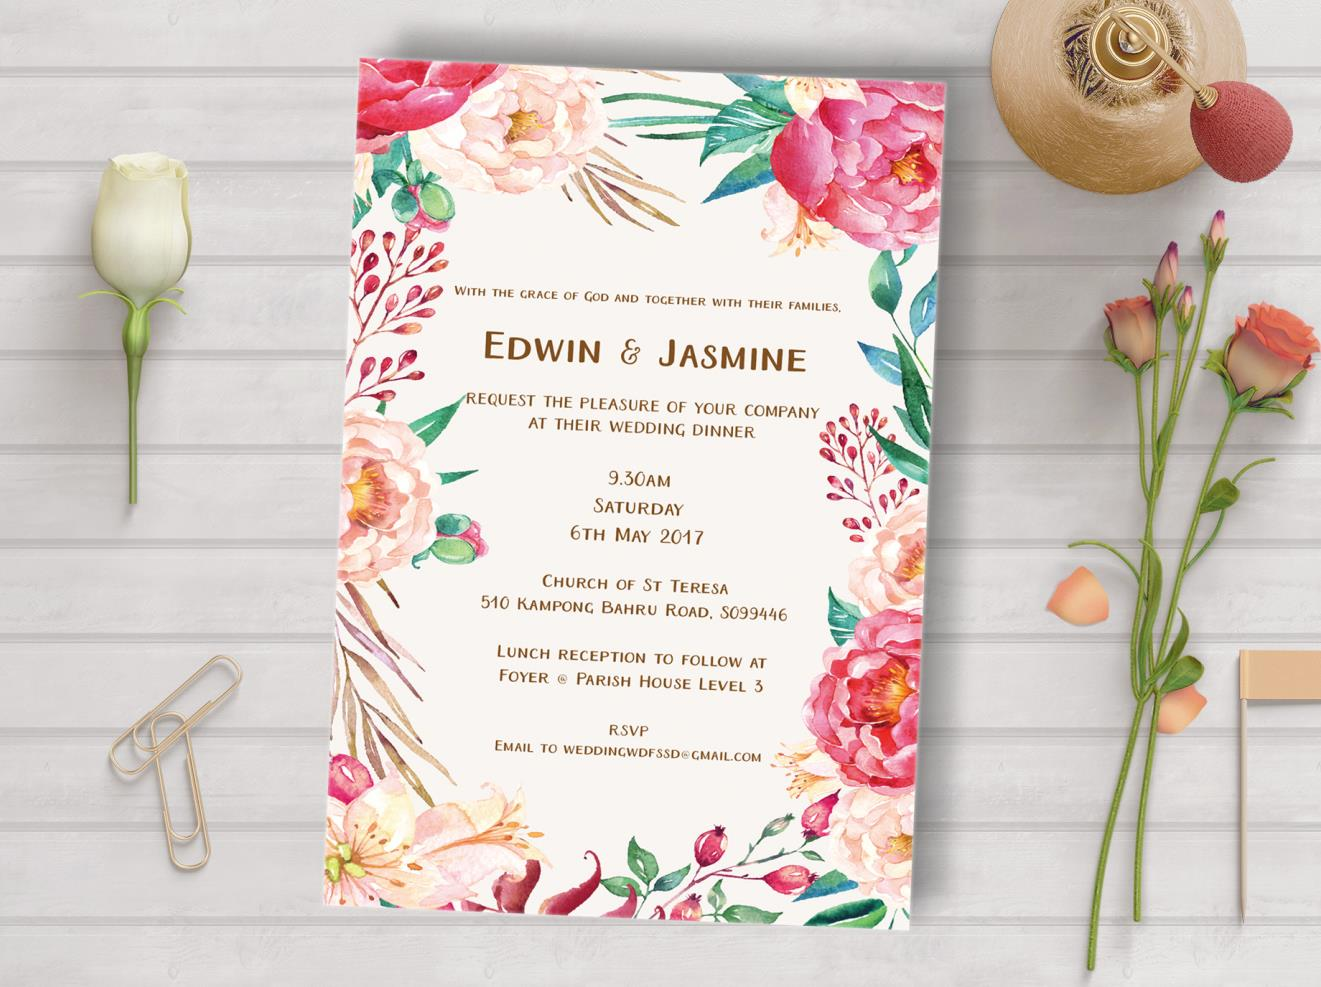 Wording Of Wedding Invitations: Wedding Invitation Wording Samples & Tips